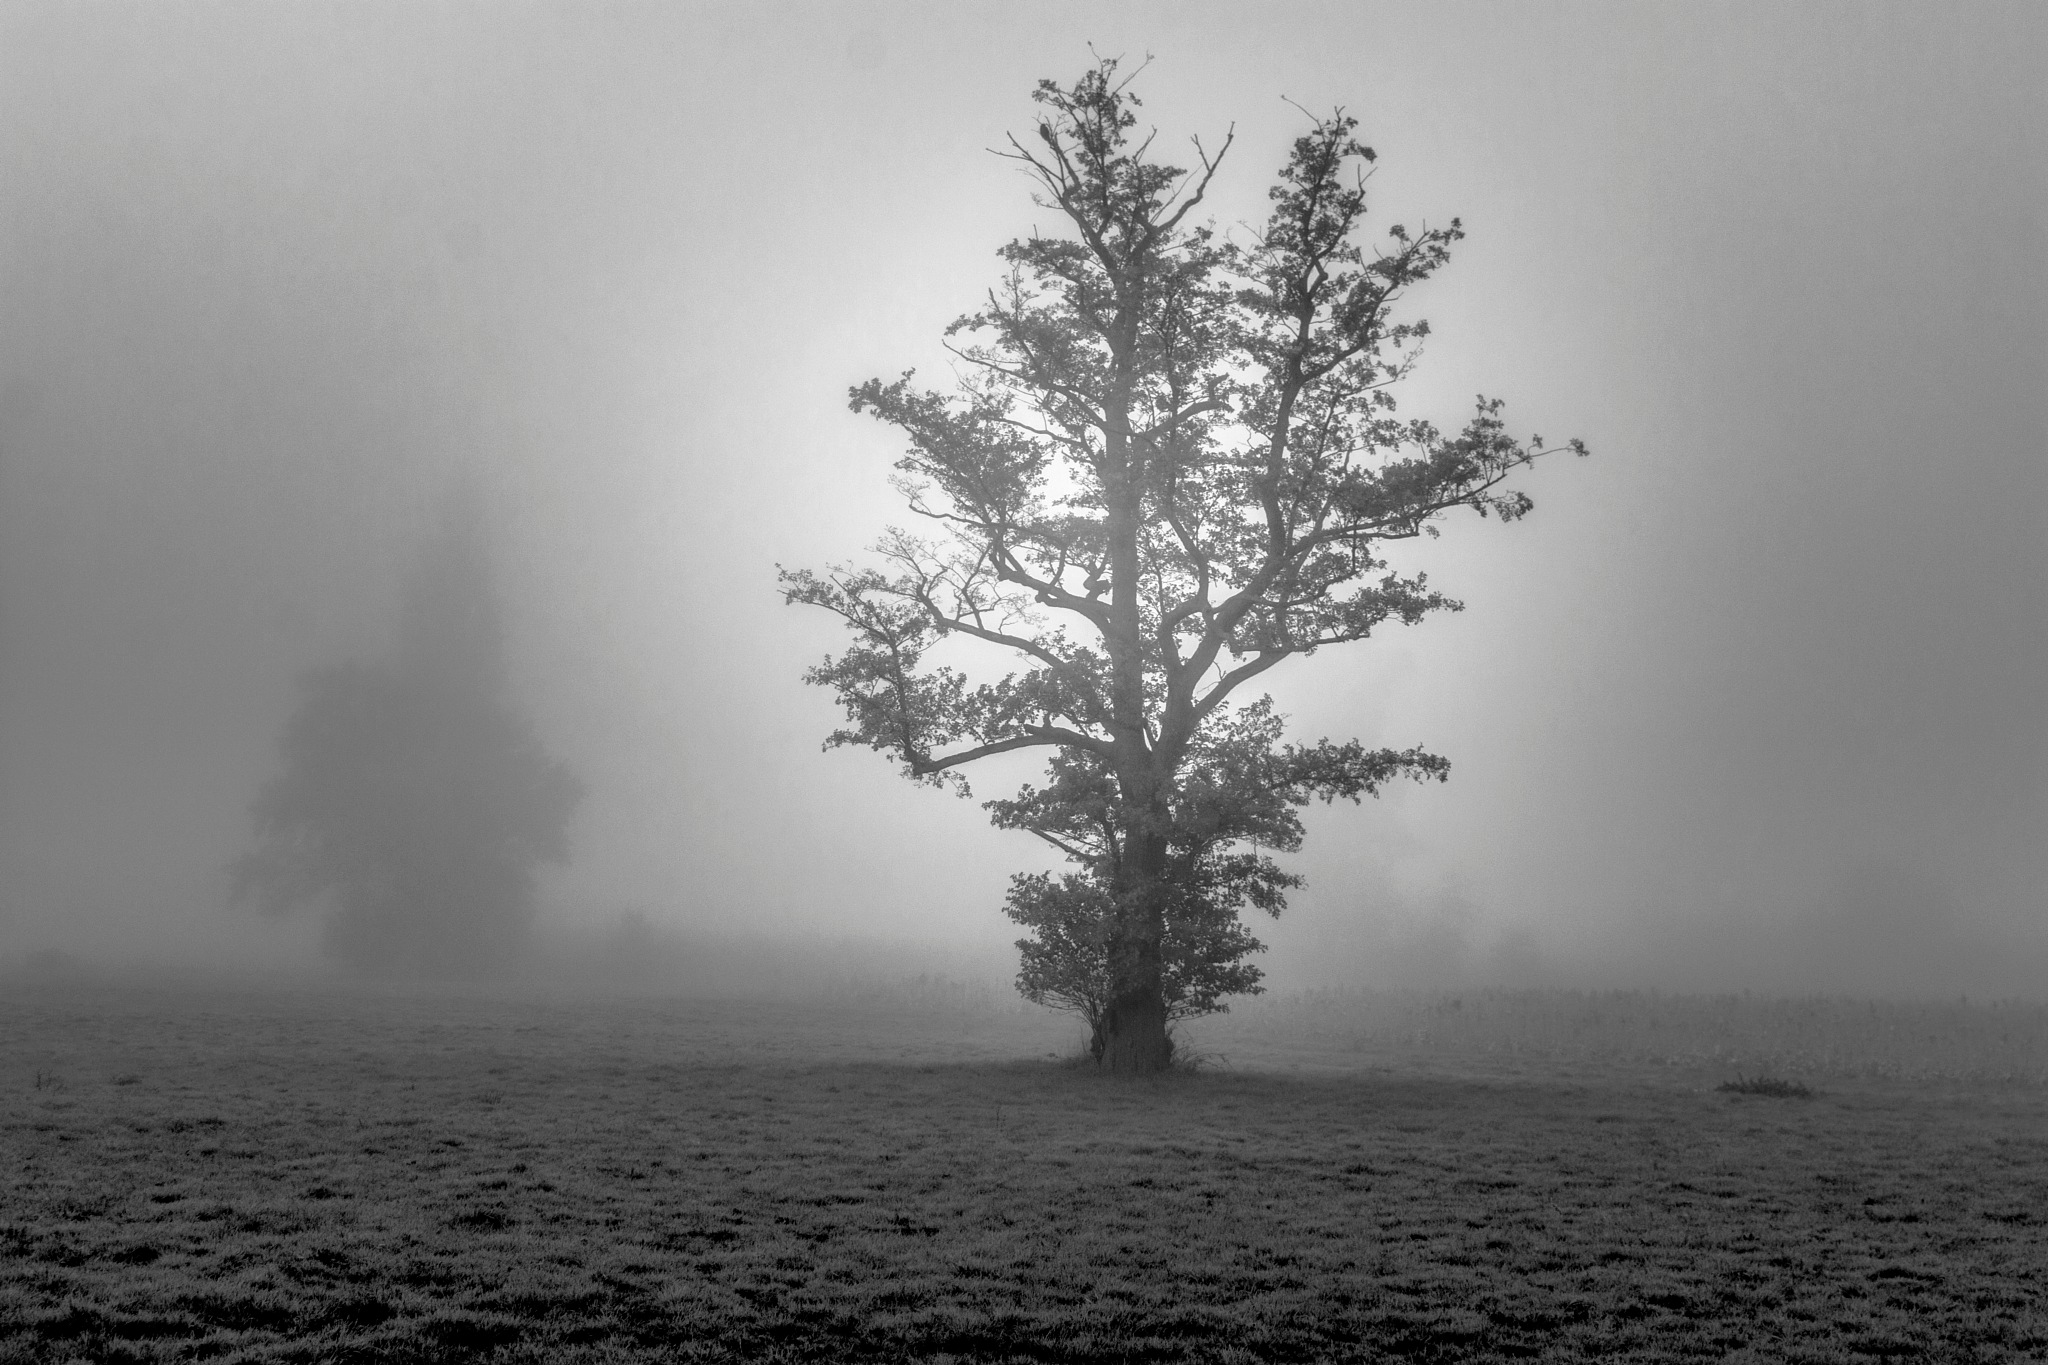 trees in the mist by John Palmer